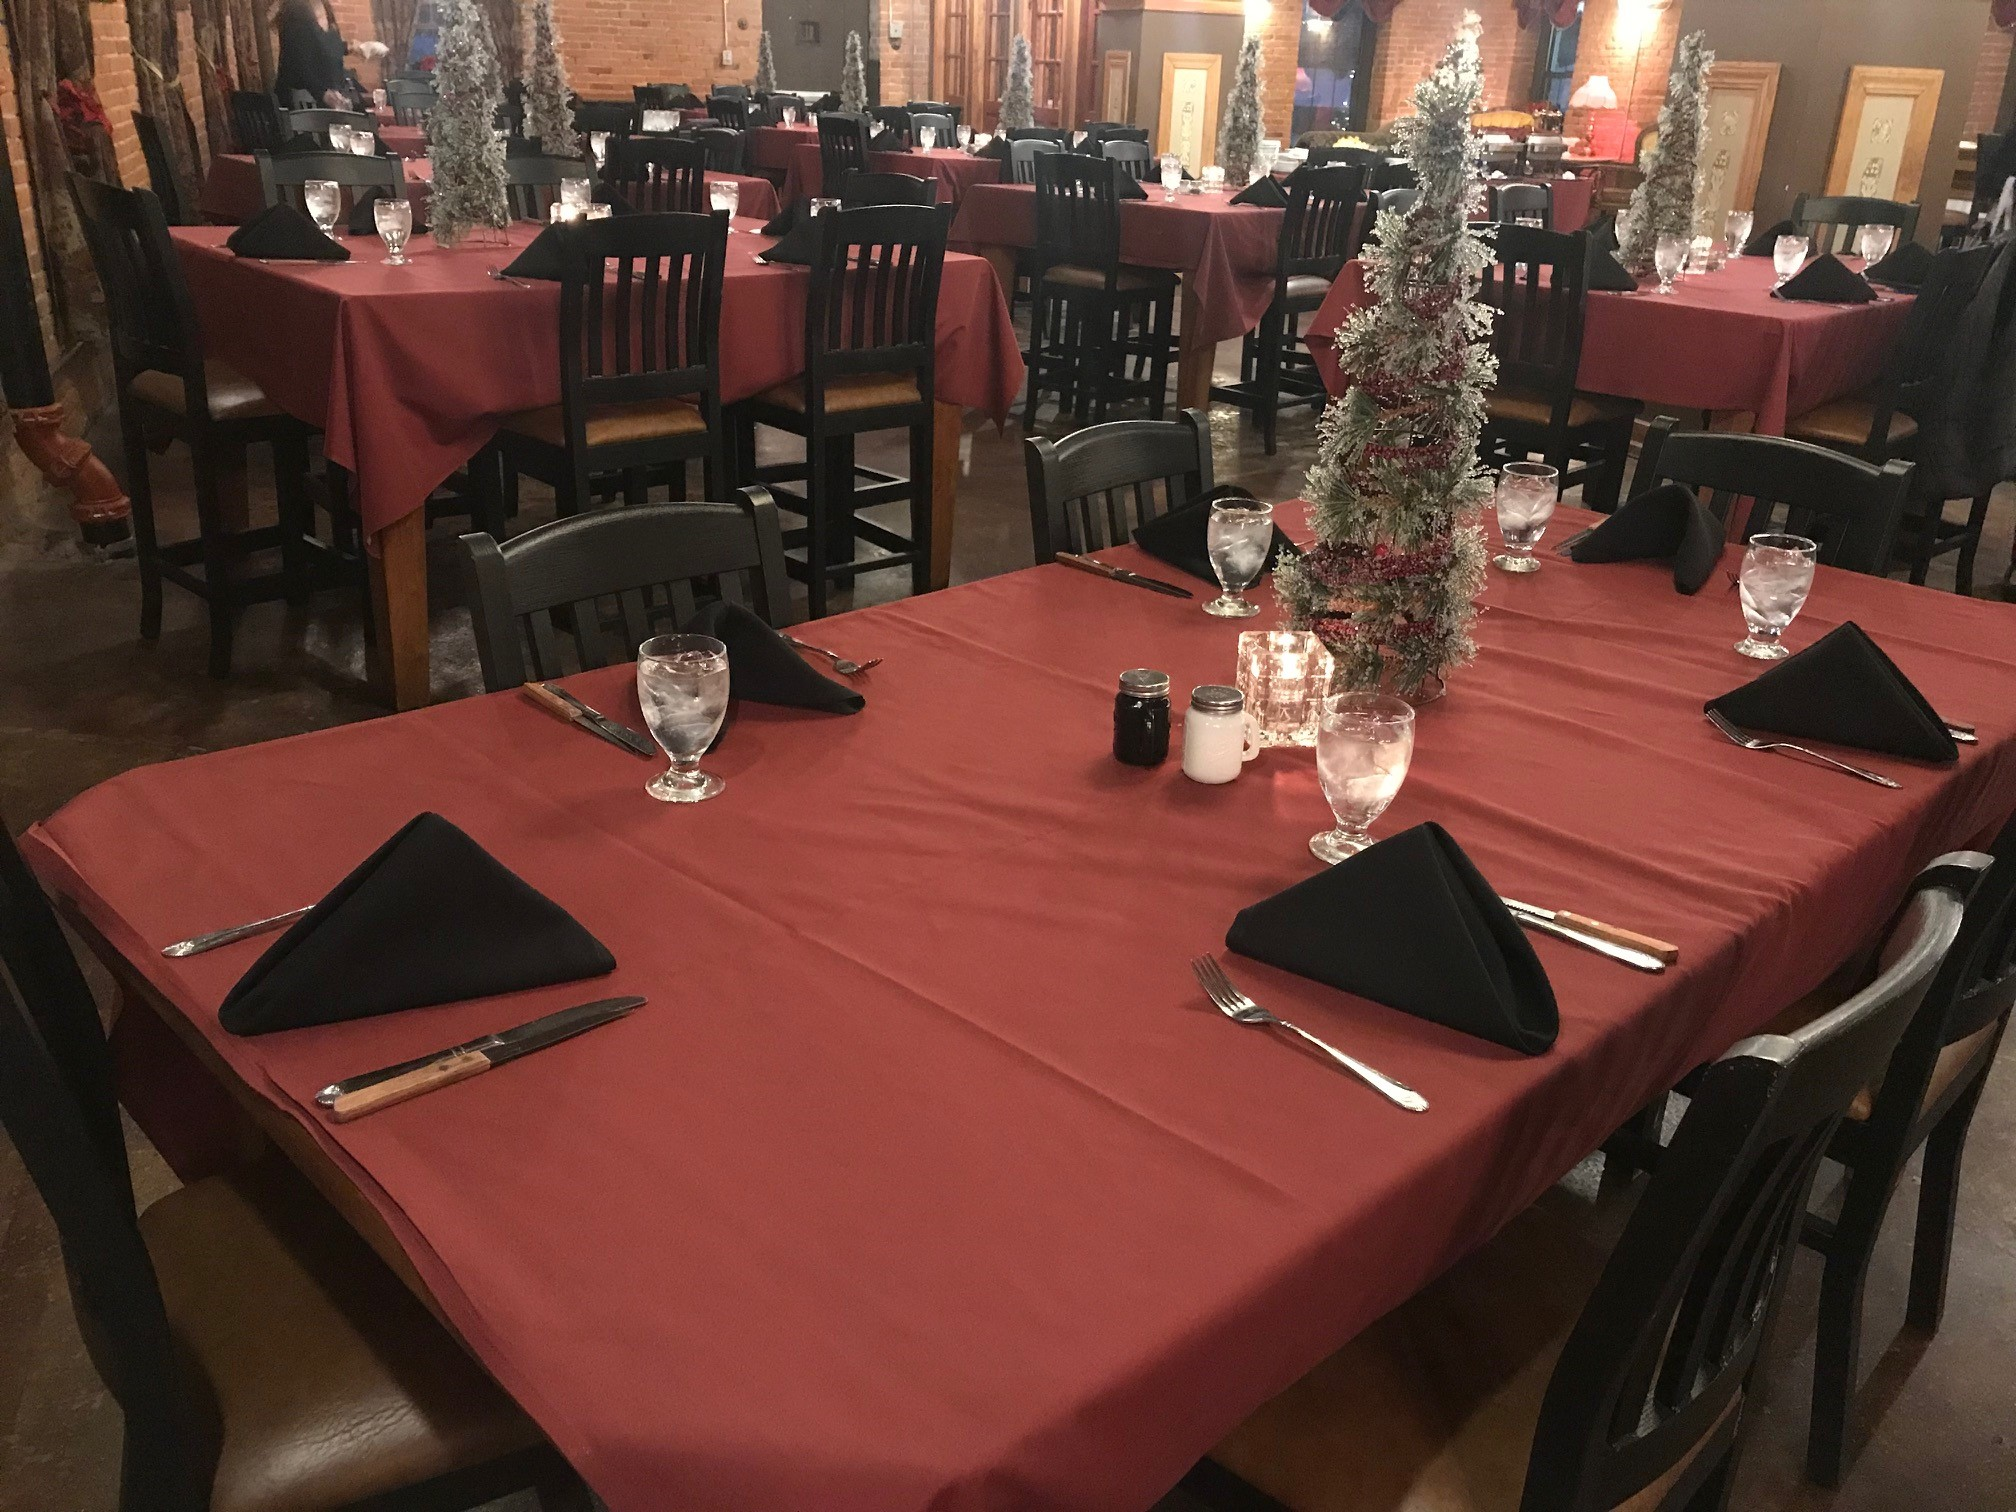 inside view of the restaurant with multiple tables and mini christmas trees on the table as centerpieces